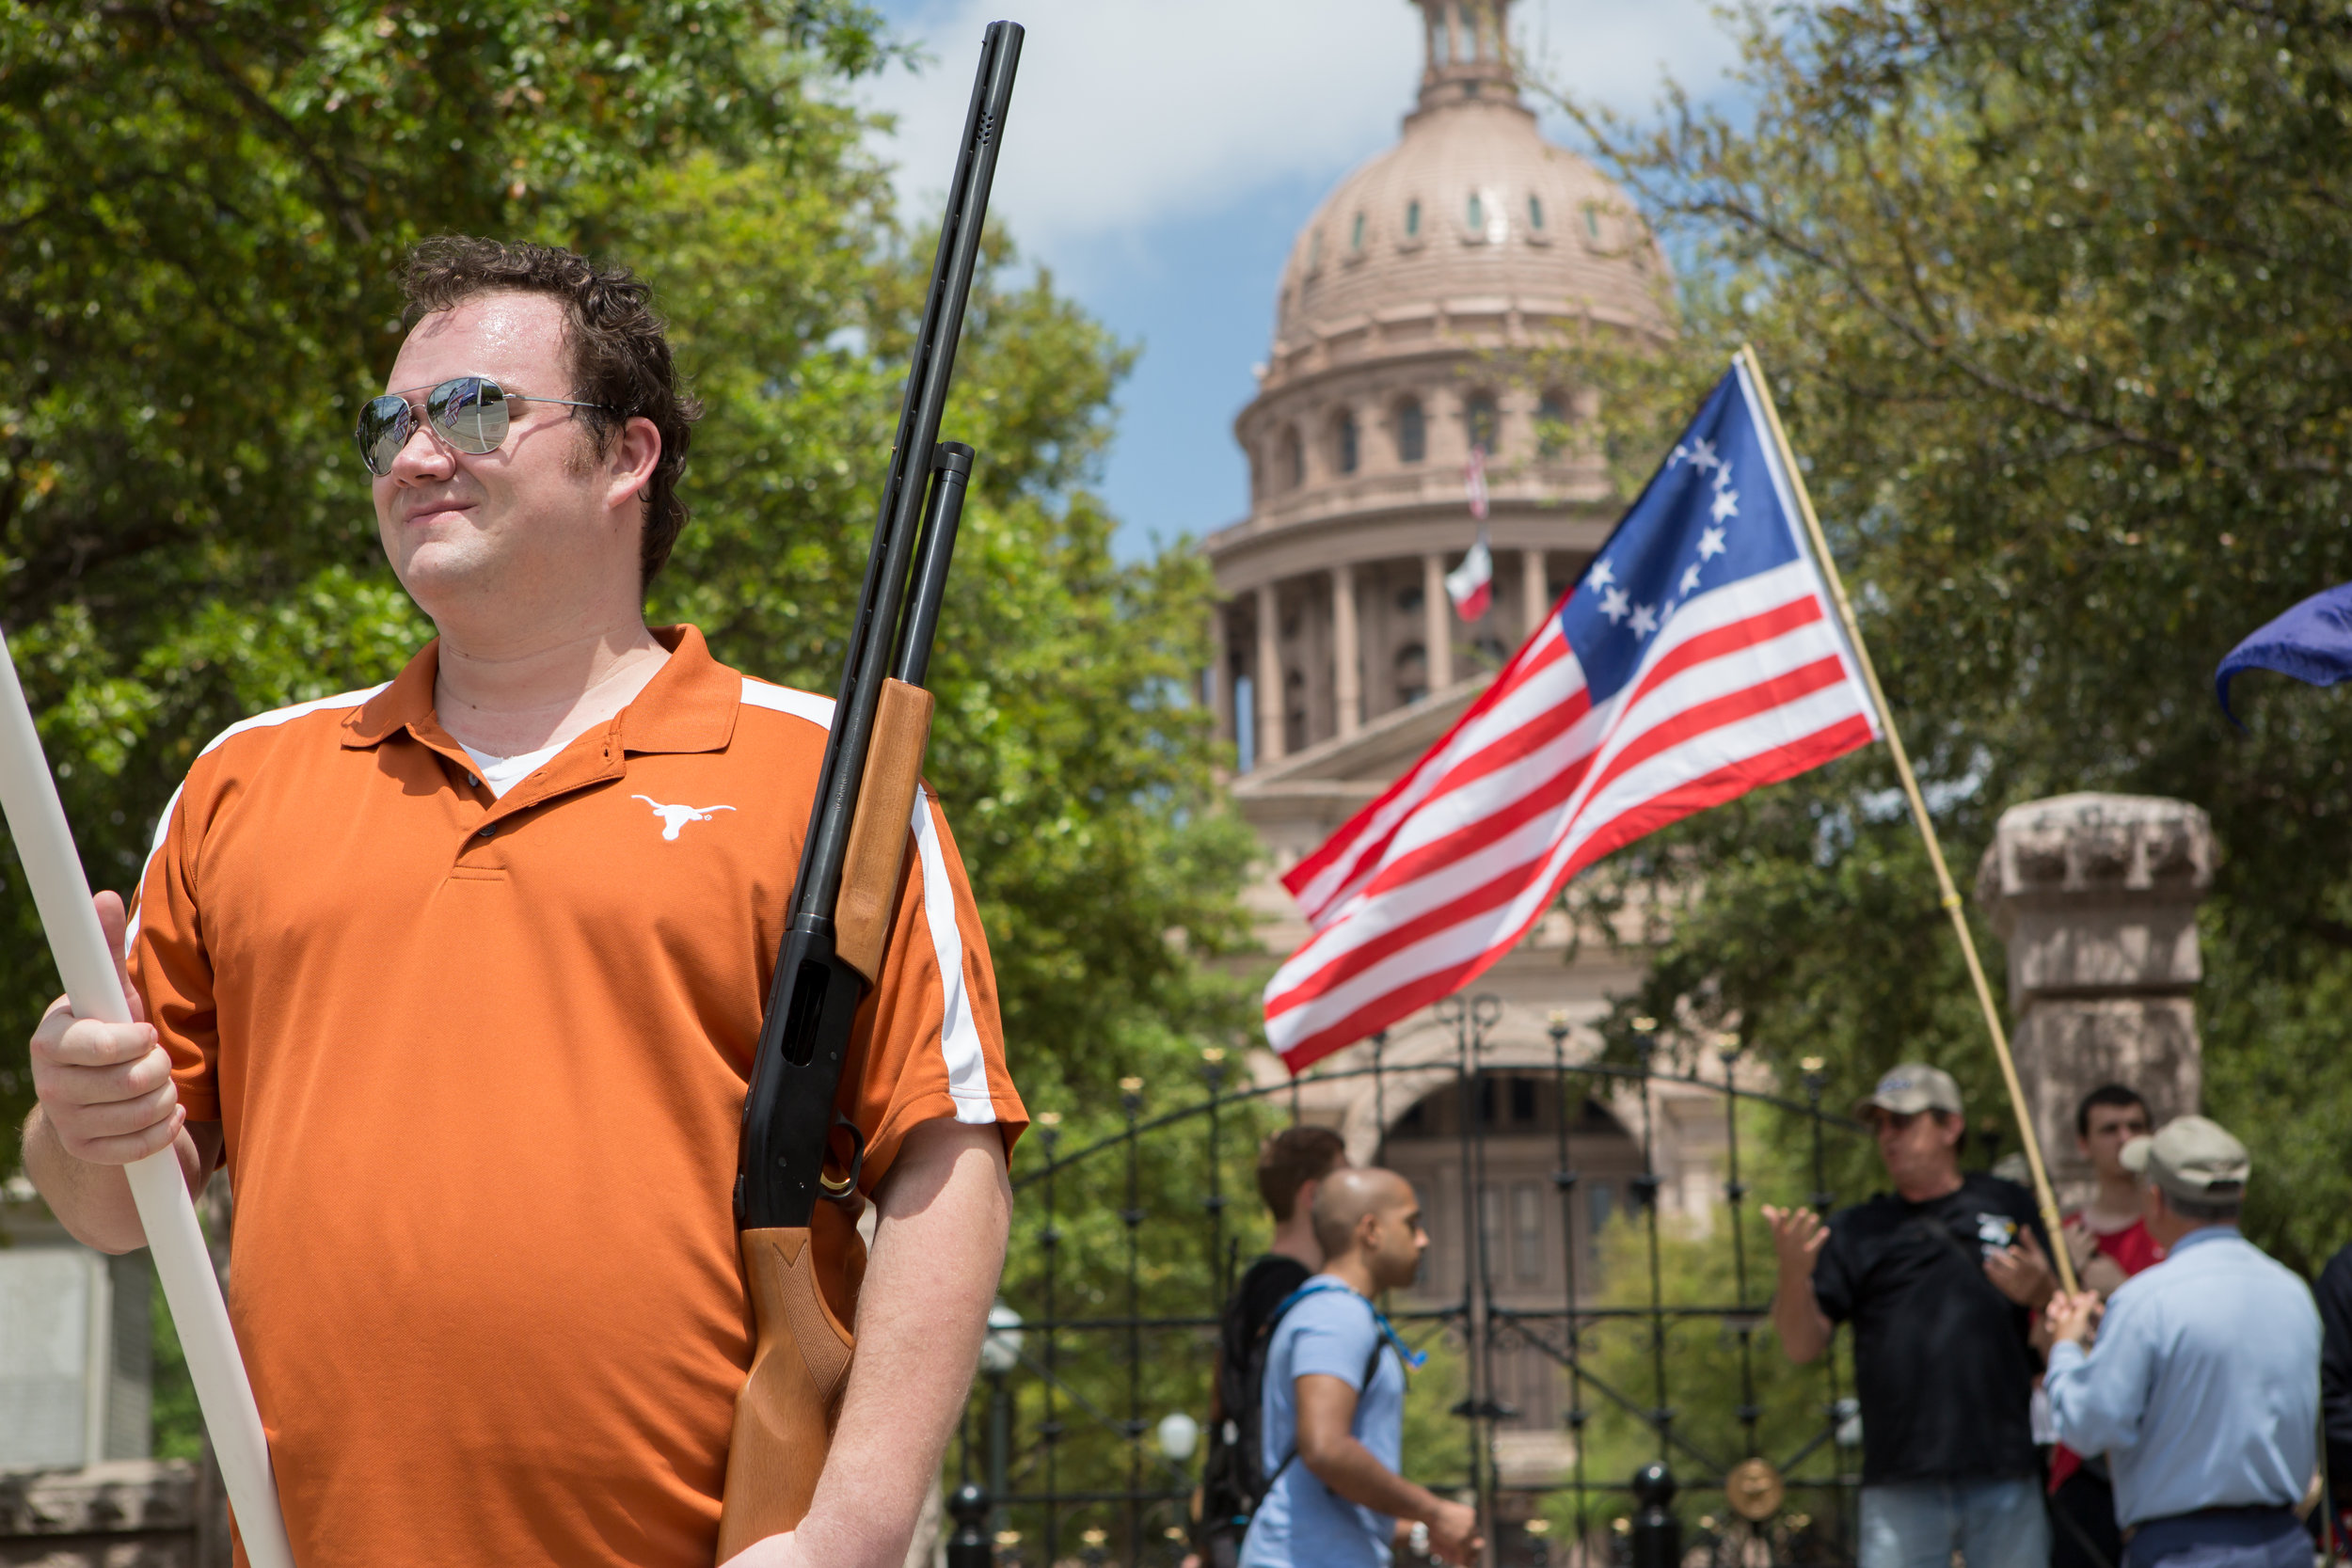 Members of Come and Take It Austin protest for the right to carry firearms without permits in front of the Texas Capitol Building.